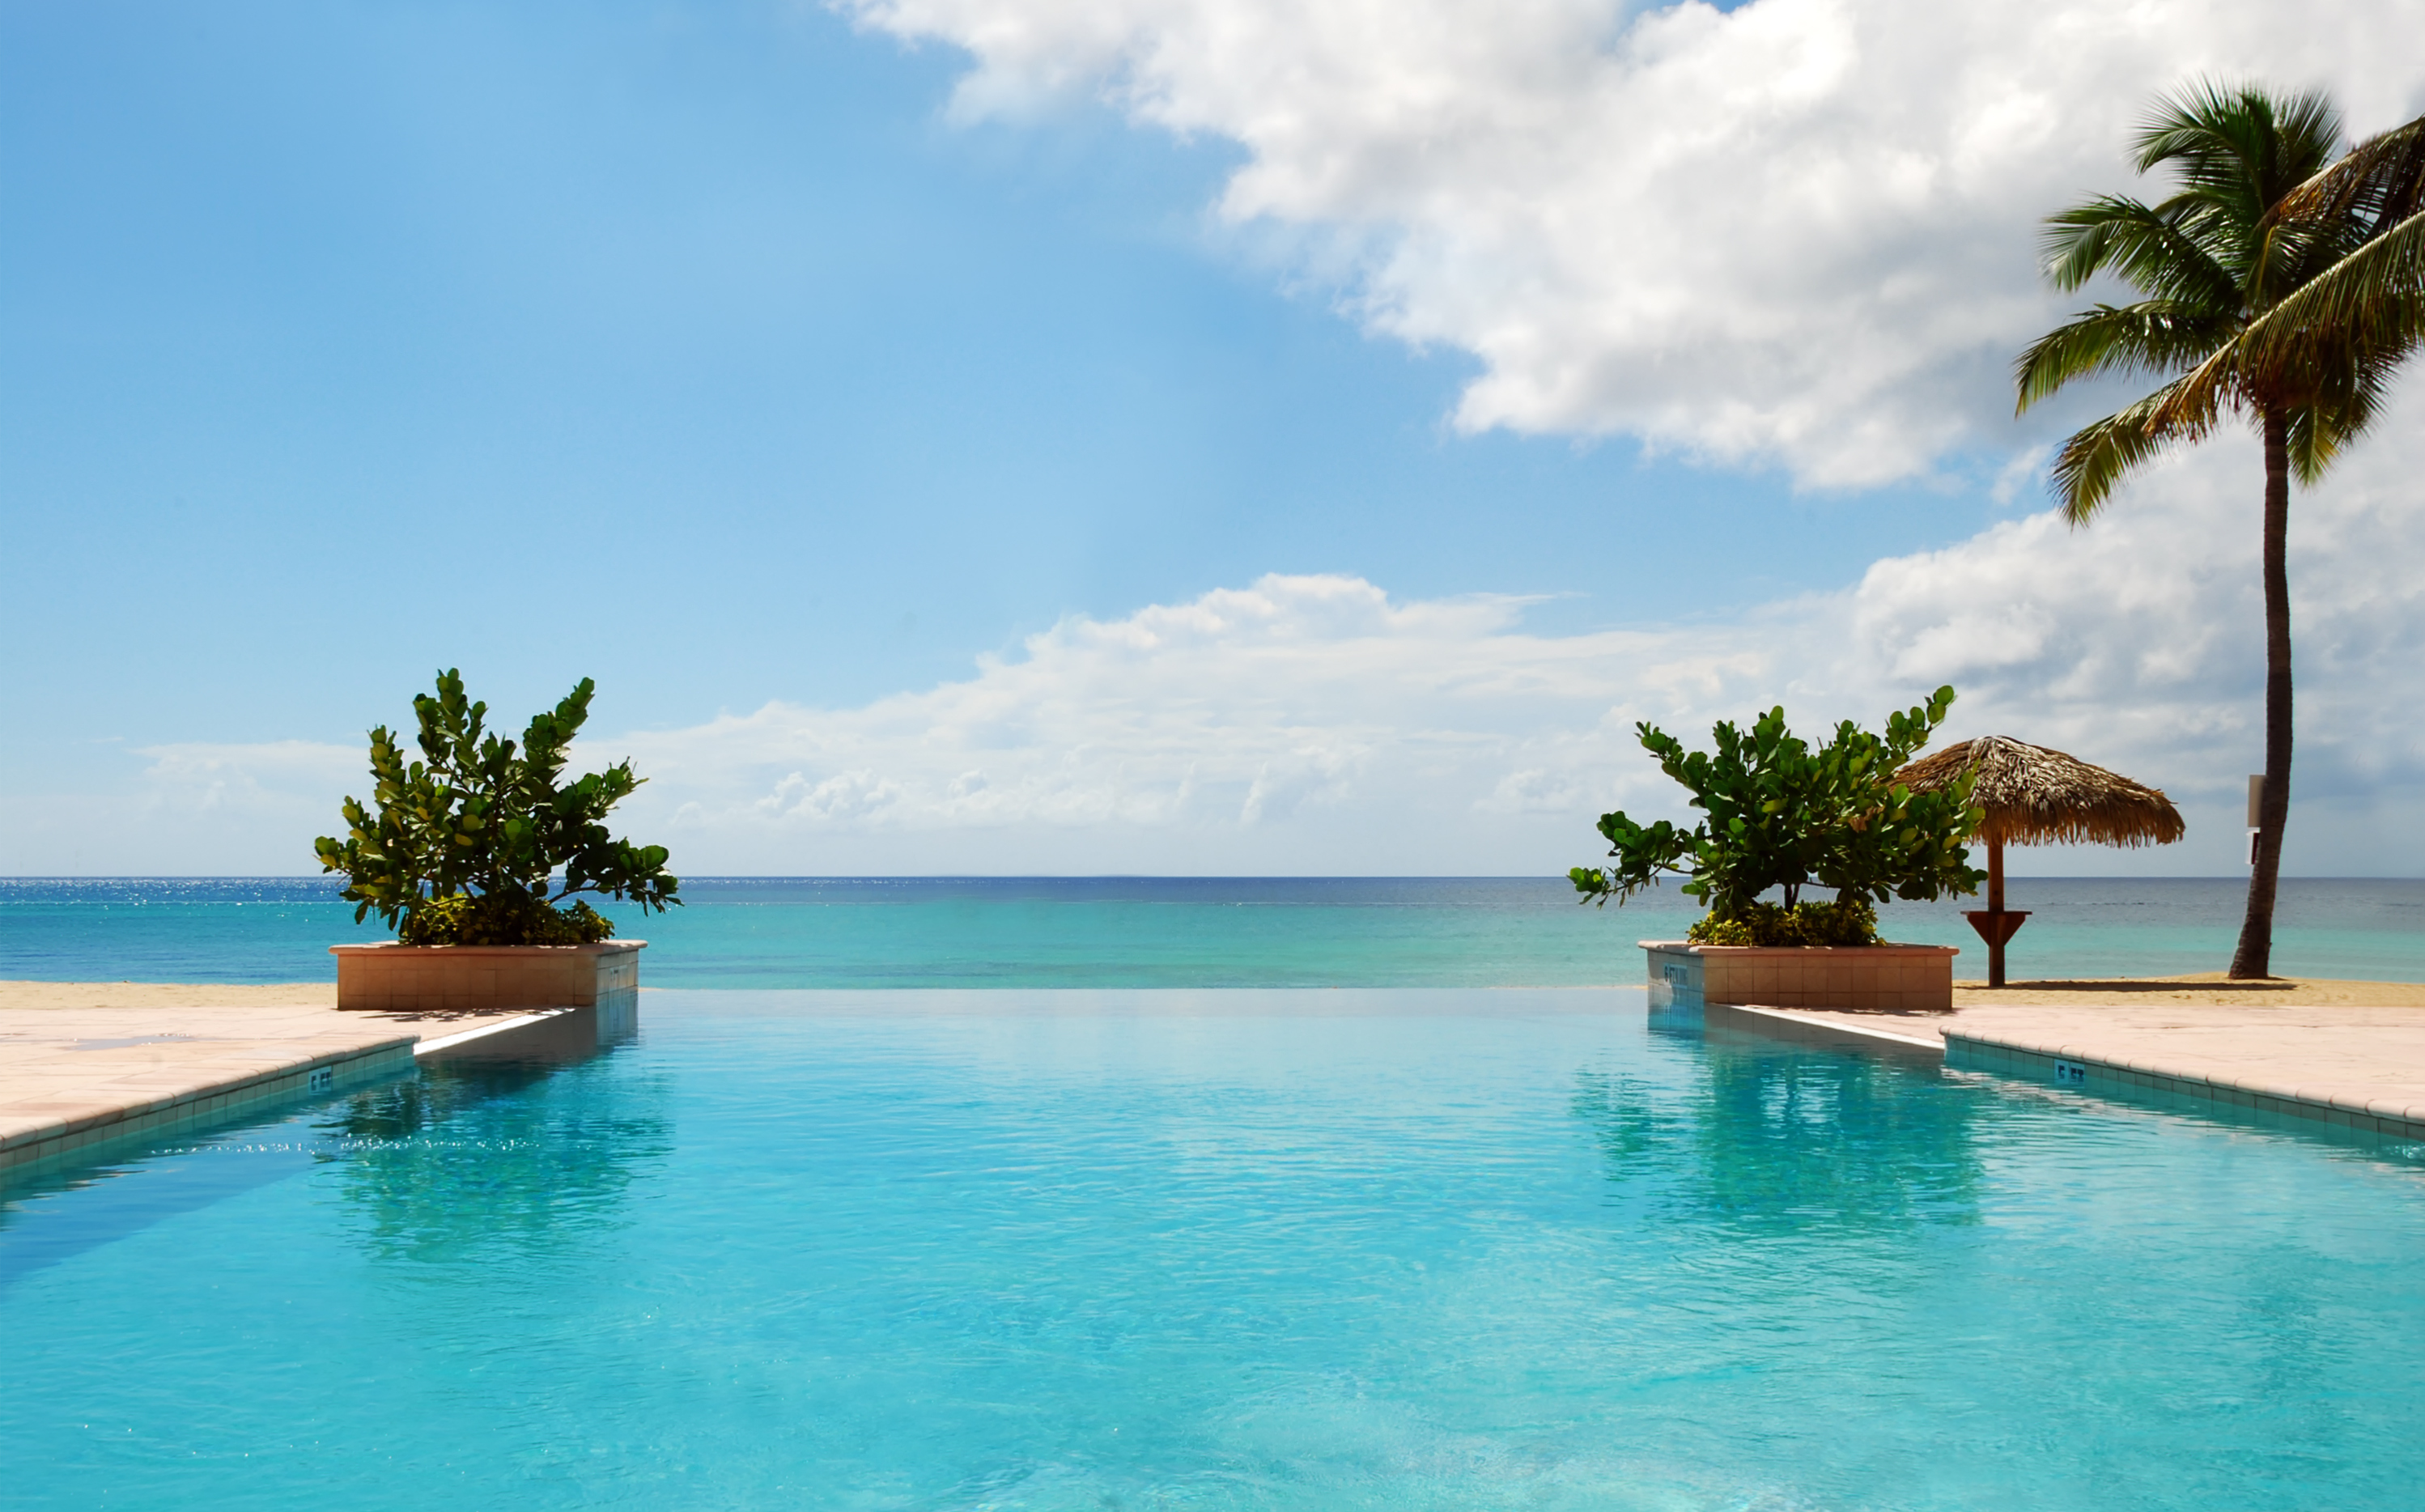 Luxury swimming pool on the beach • Luxury Holidays by Holiday Hamster